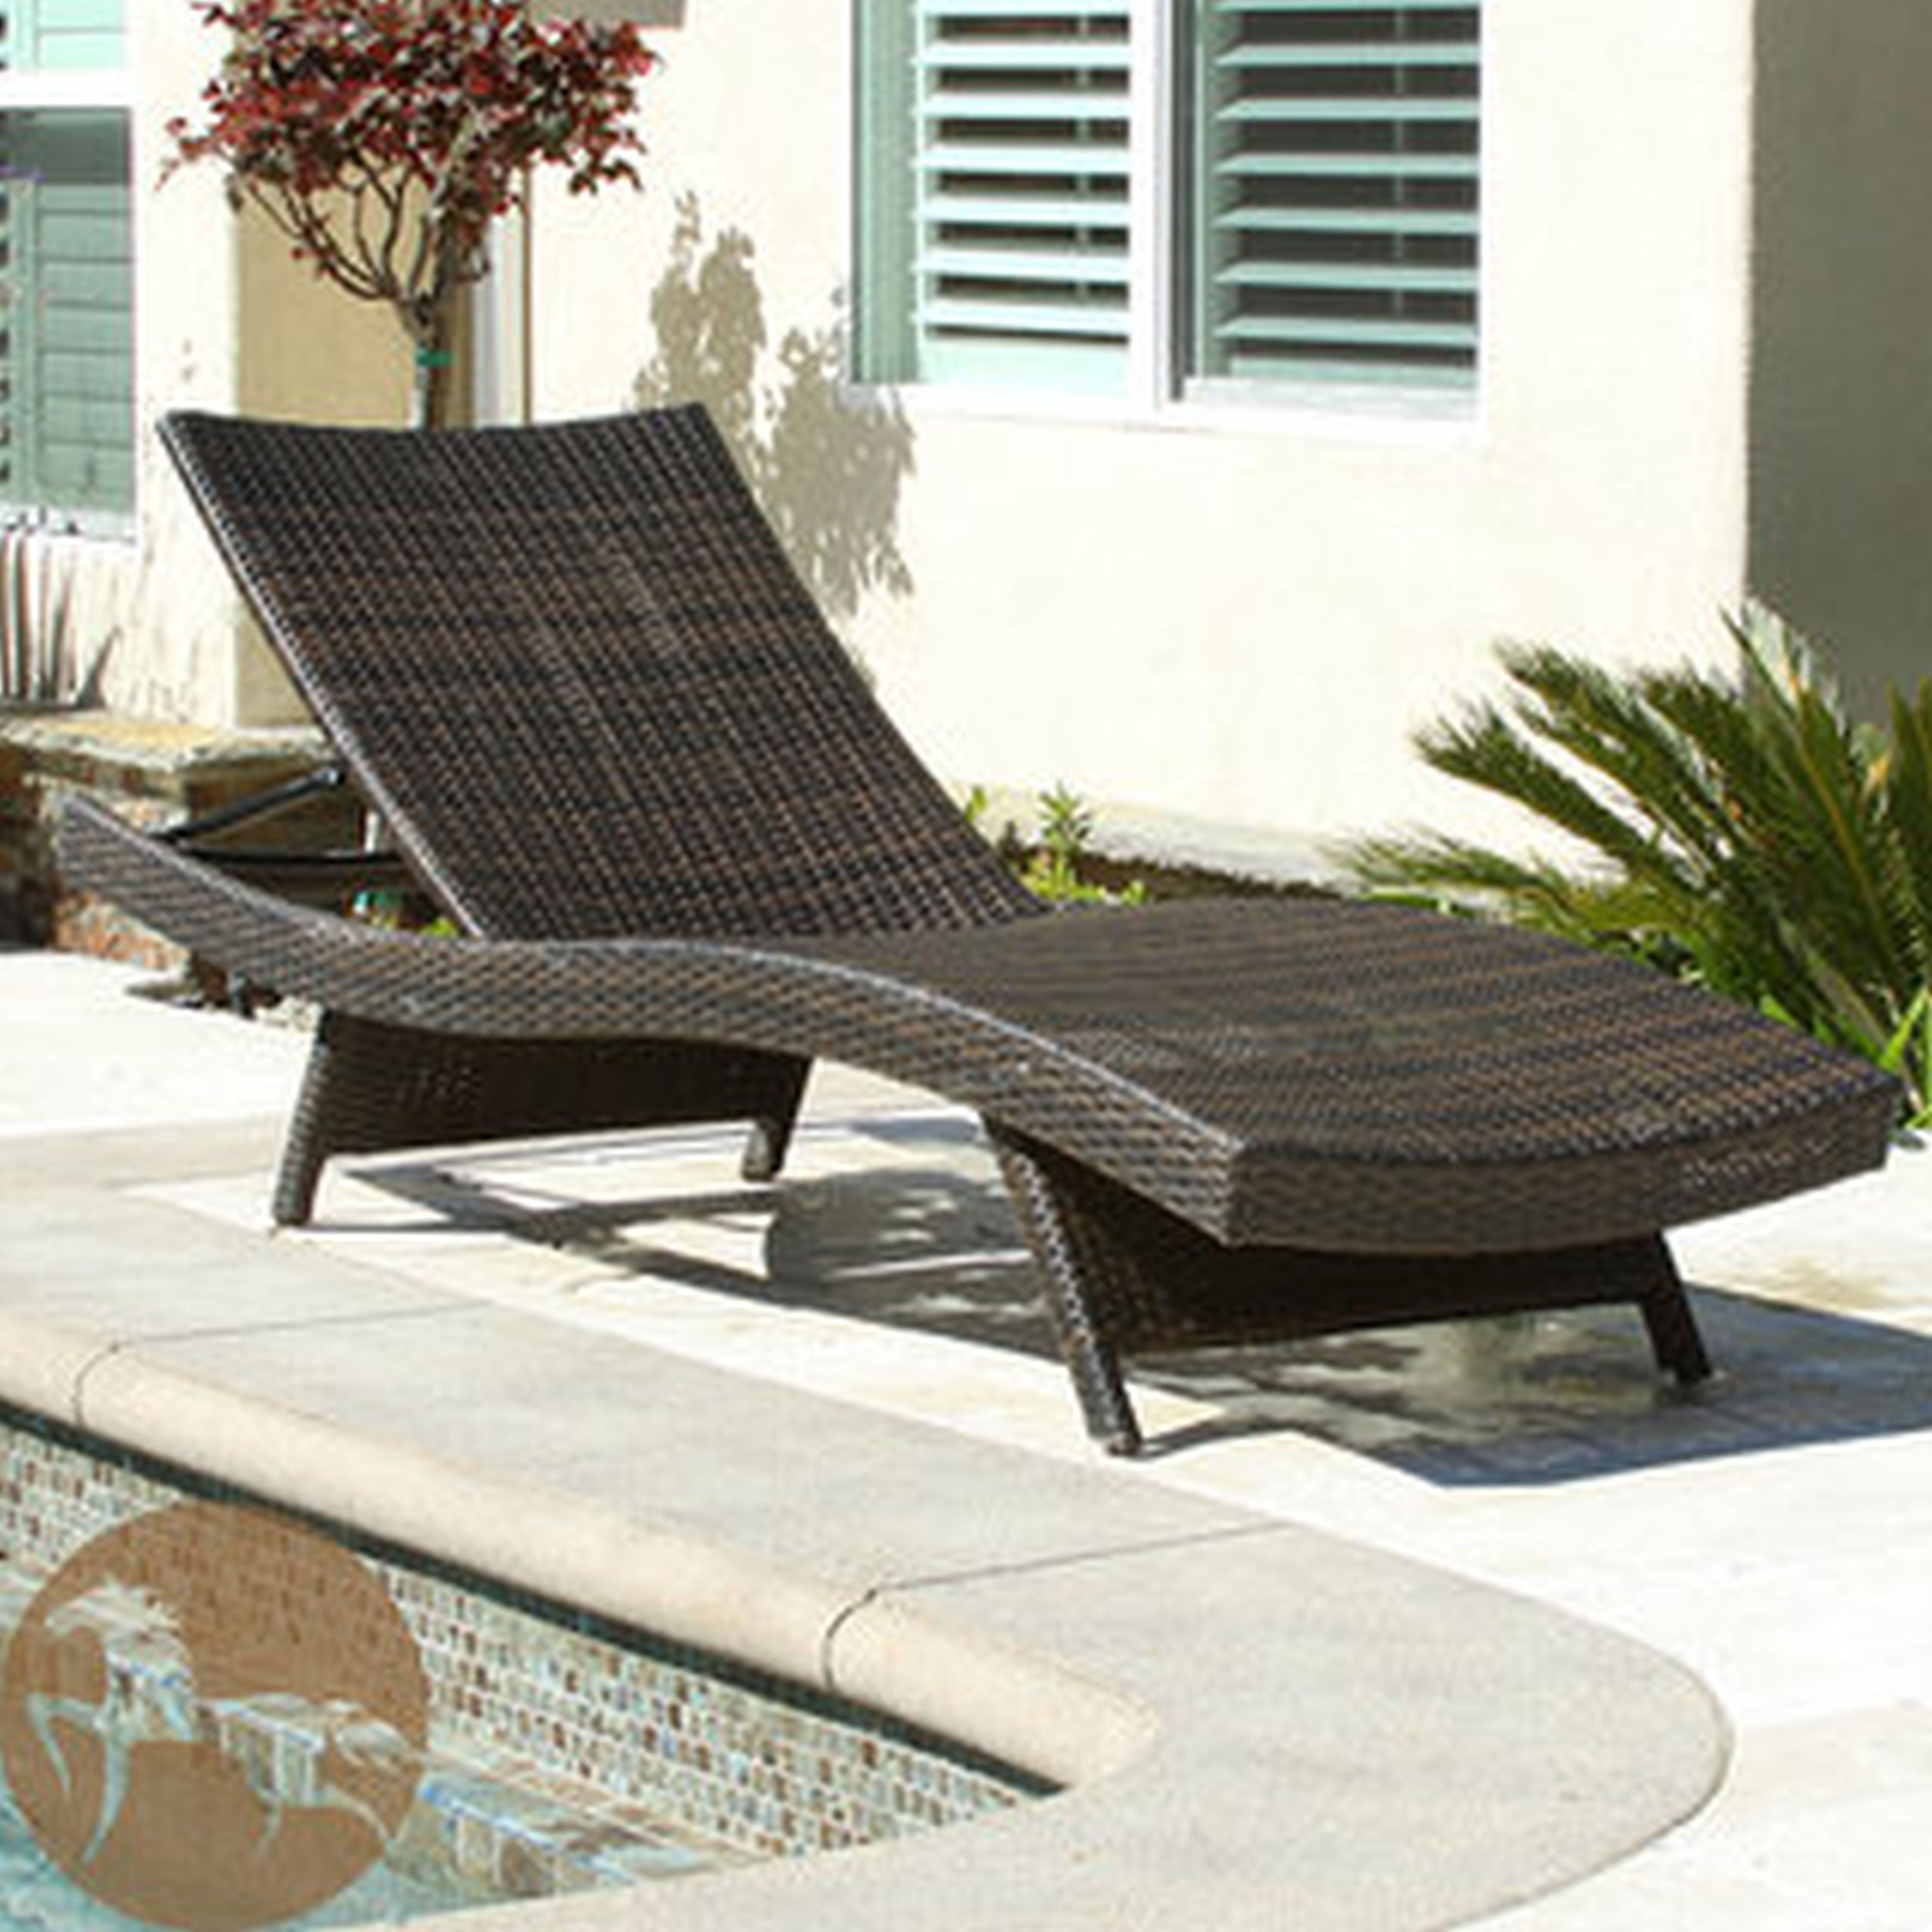 Patio Chaise Lounge As The Must Have Furniture In Your Pool Deck With Fashionable Adams Chaise Lounges (View 15 of 15)